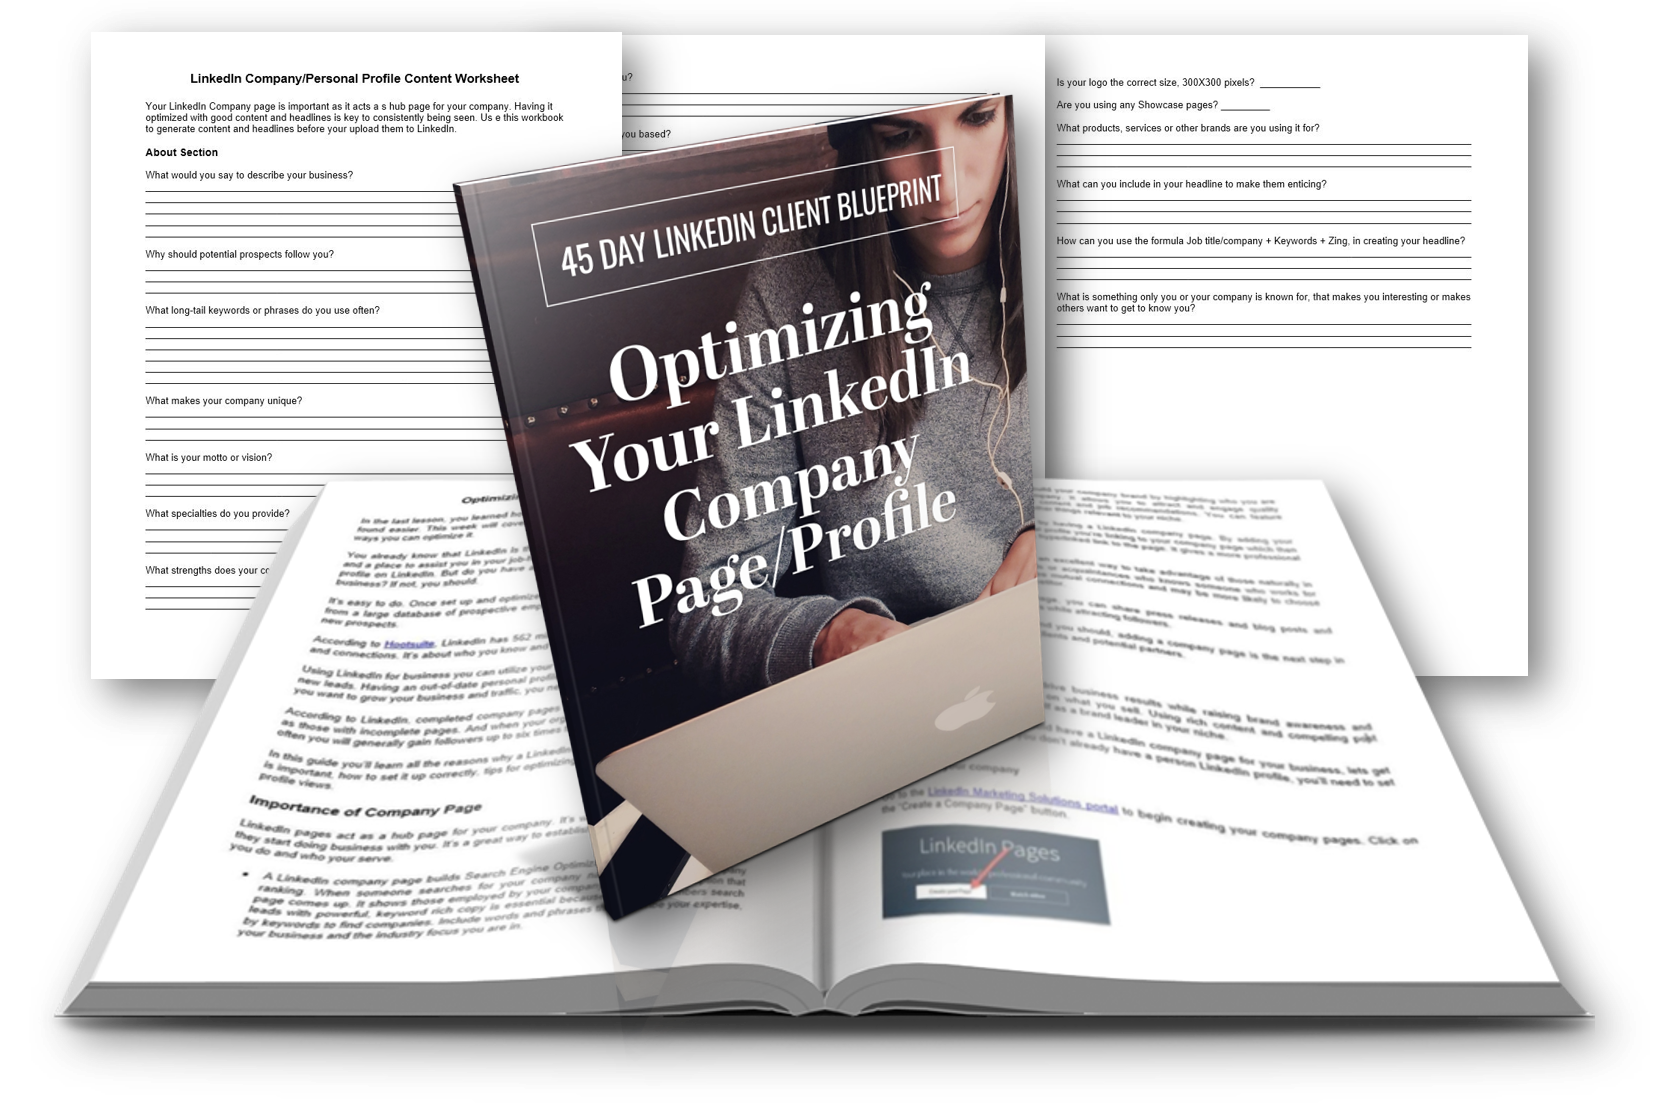 Optimizing Your LinkedIn Company Page/Profile